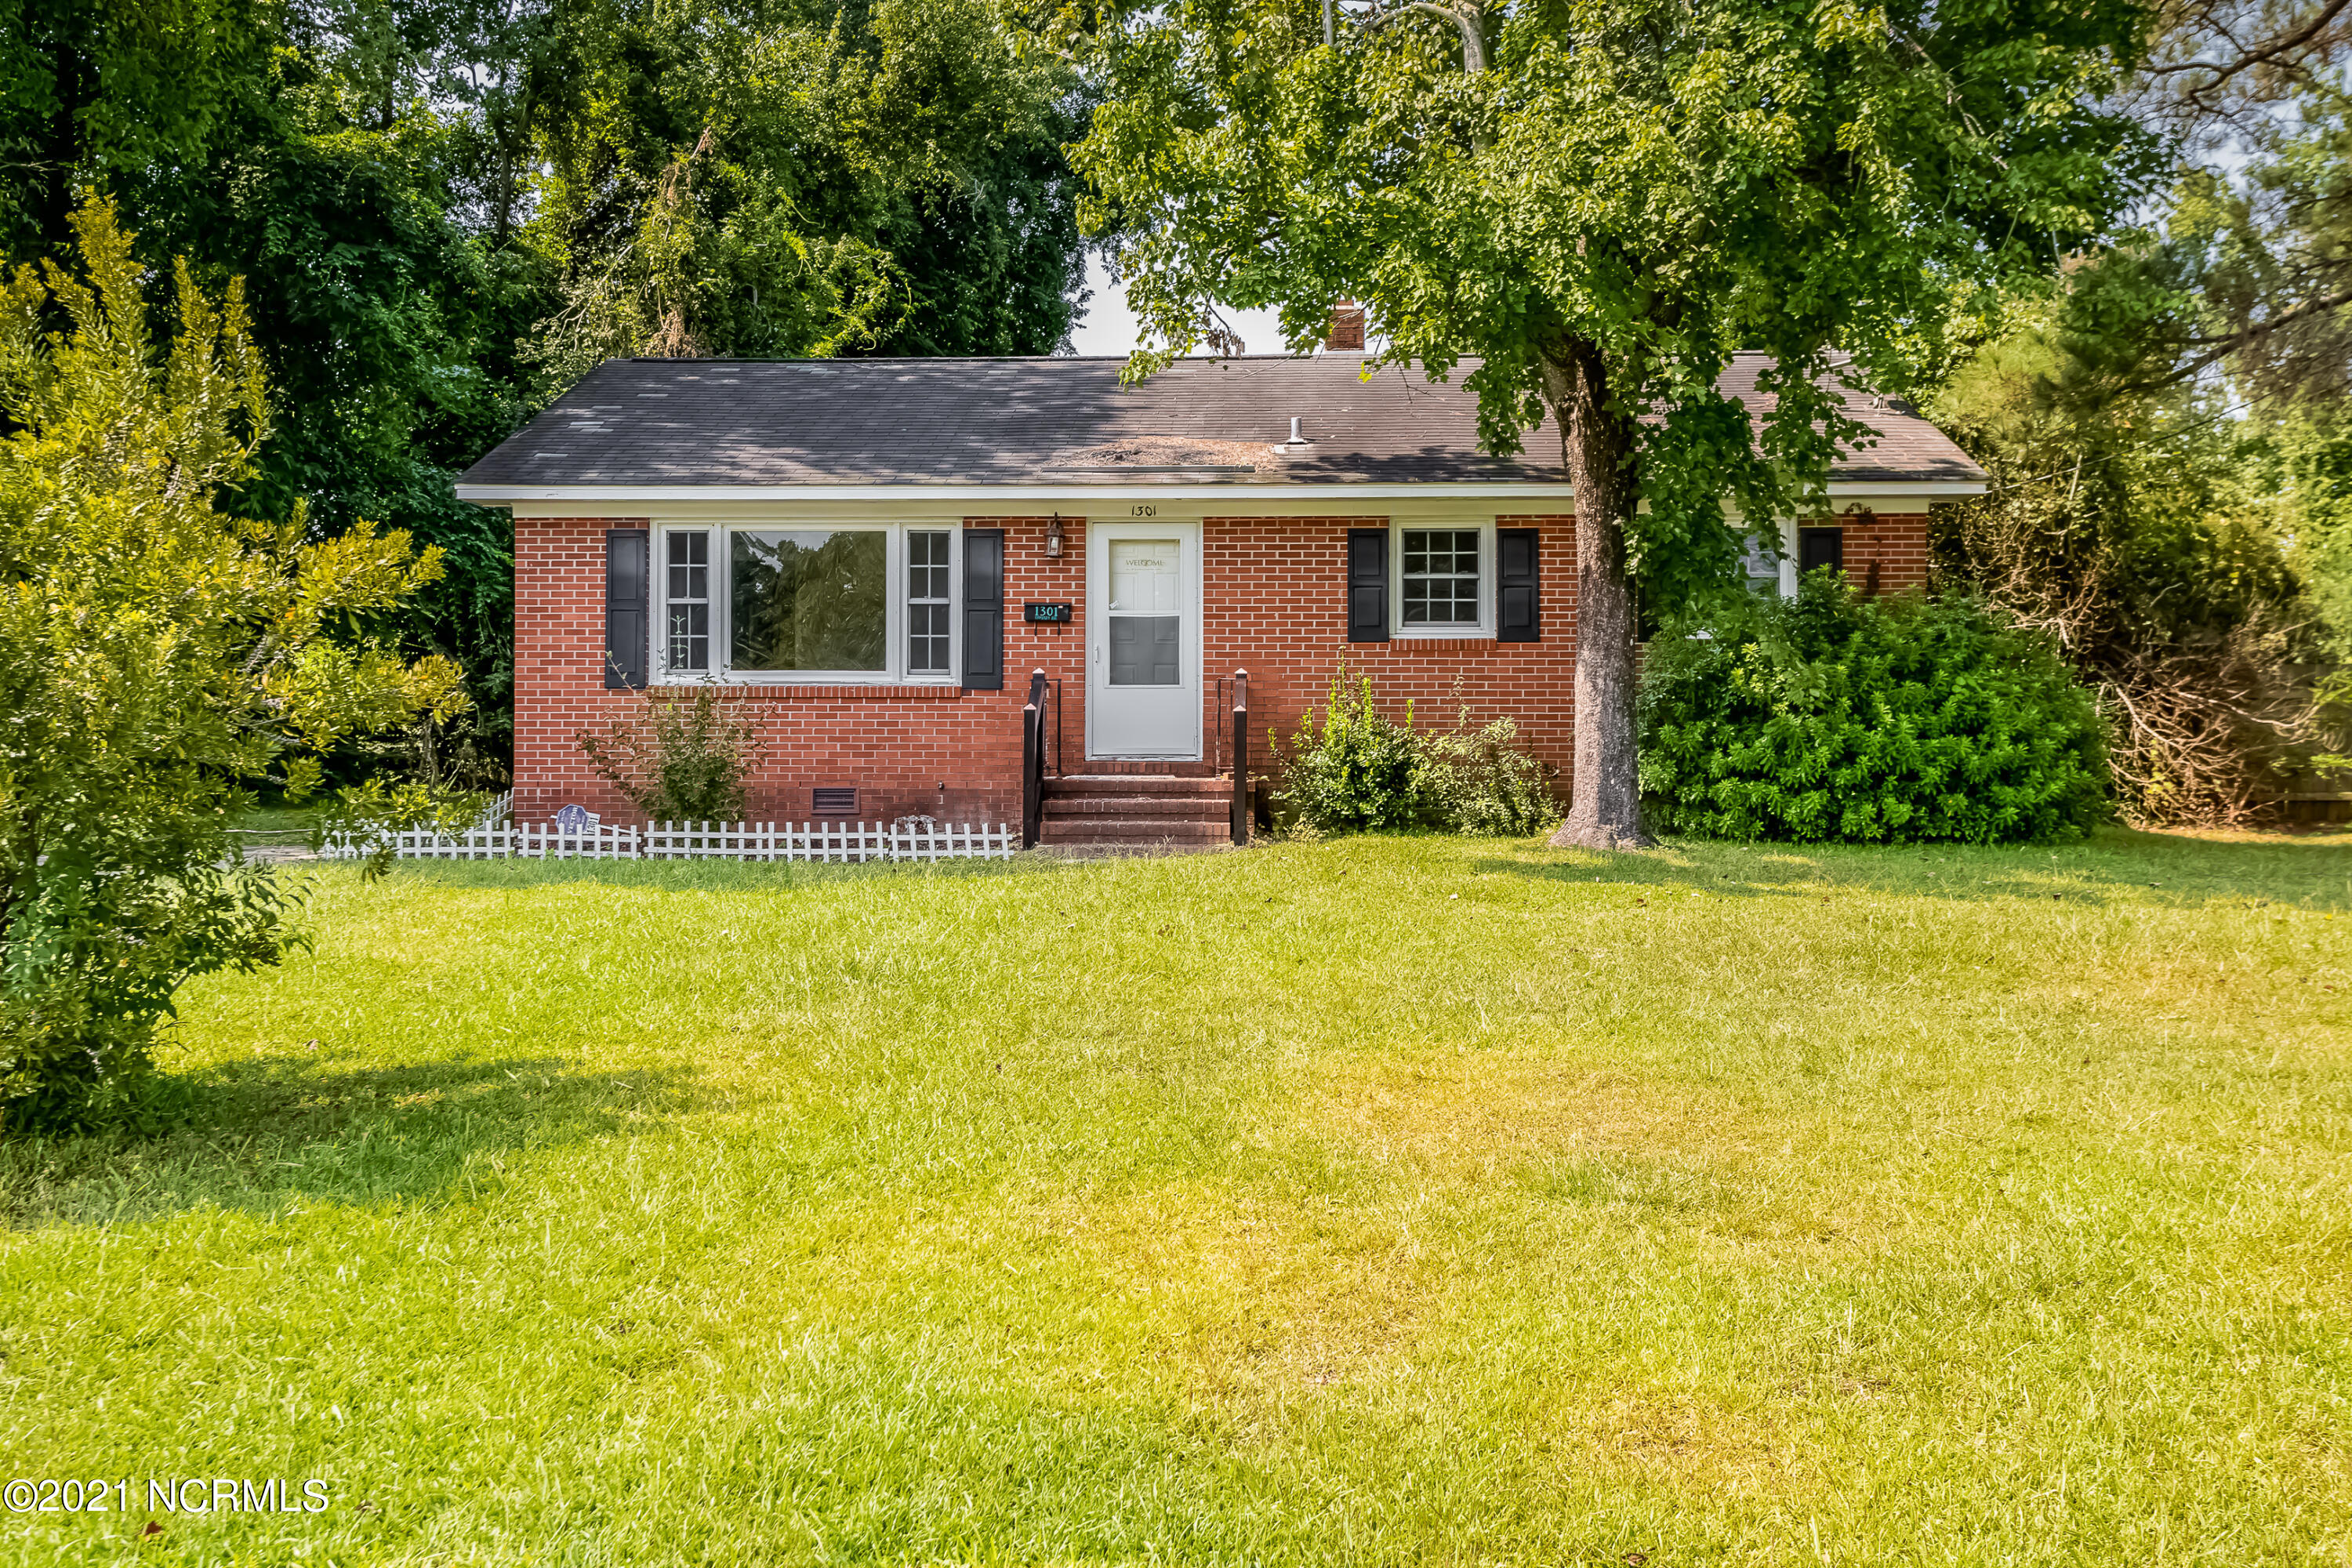 Super cute 3 bedroom, 1 and 1/2 bath home in older established neighborhood.  All new carpet and flooring throughout and new paint. Very cozy !Big back yard! Very close to businesses and not far from Camp Lejeune and MCAS.